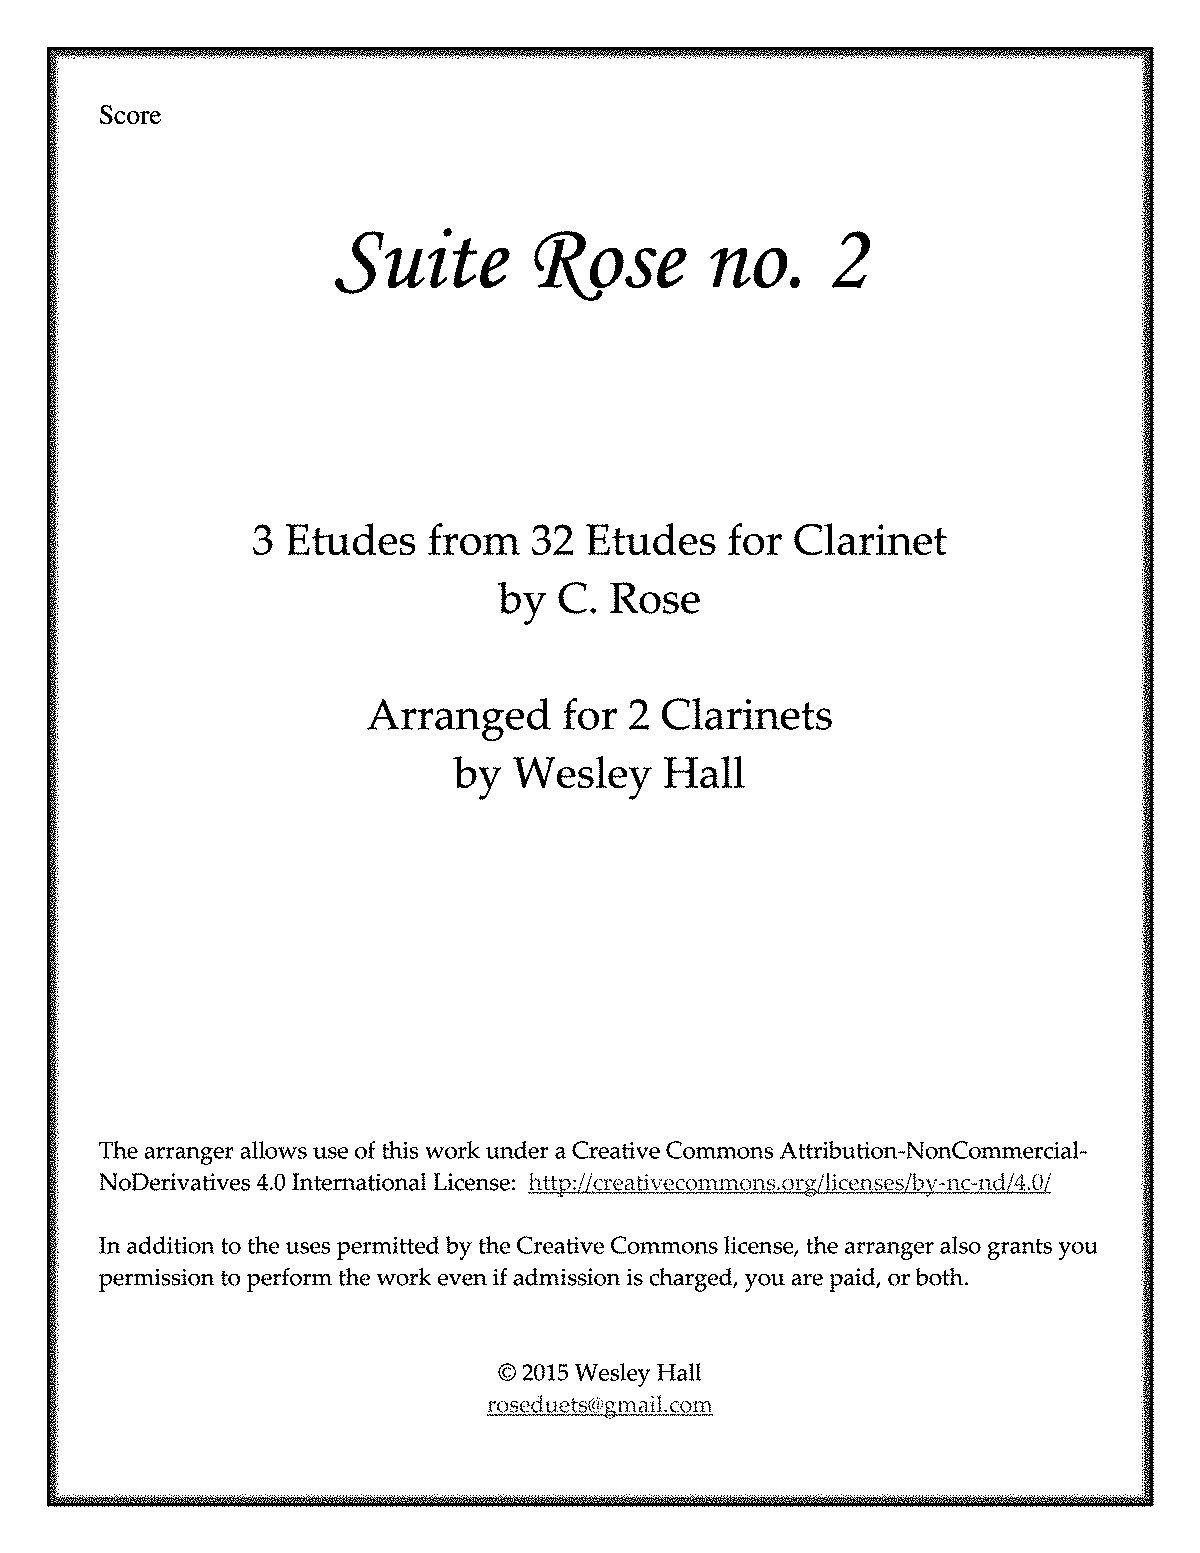 PMLP402909-Suite Rose no. 2 score.pdf